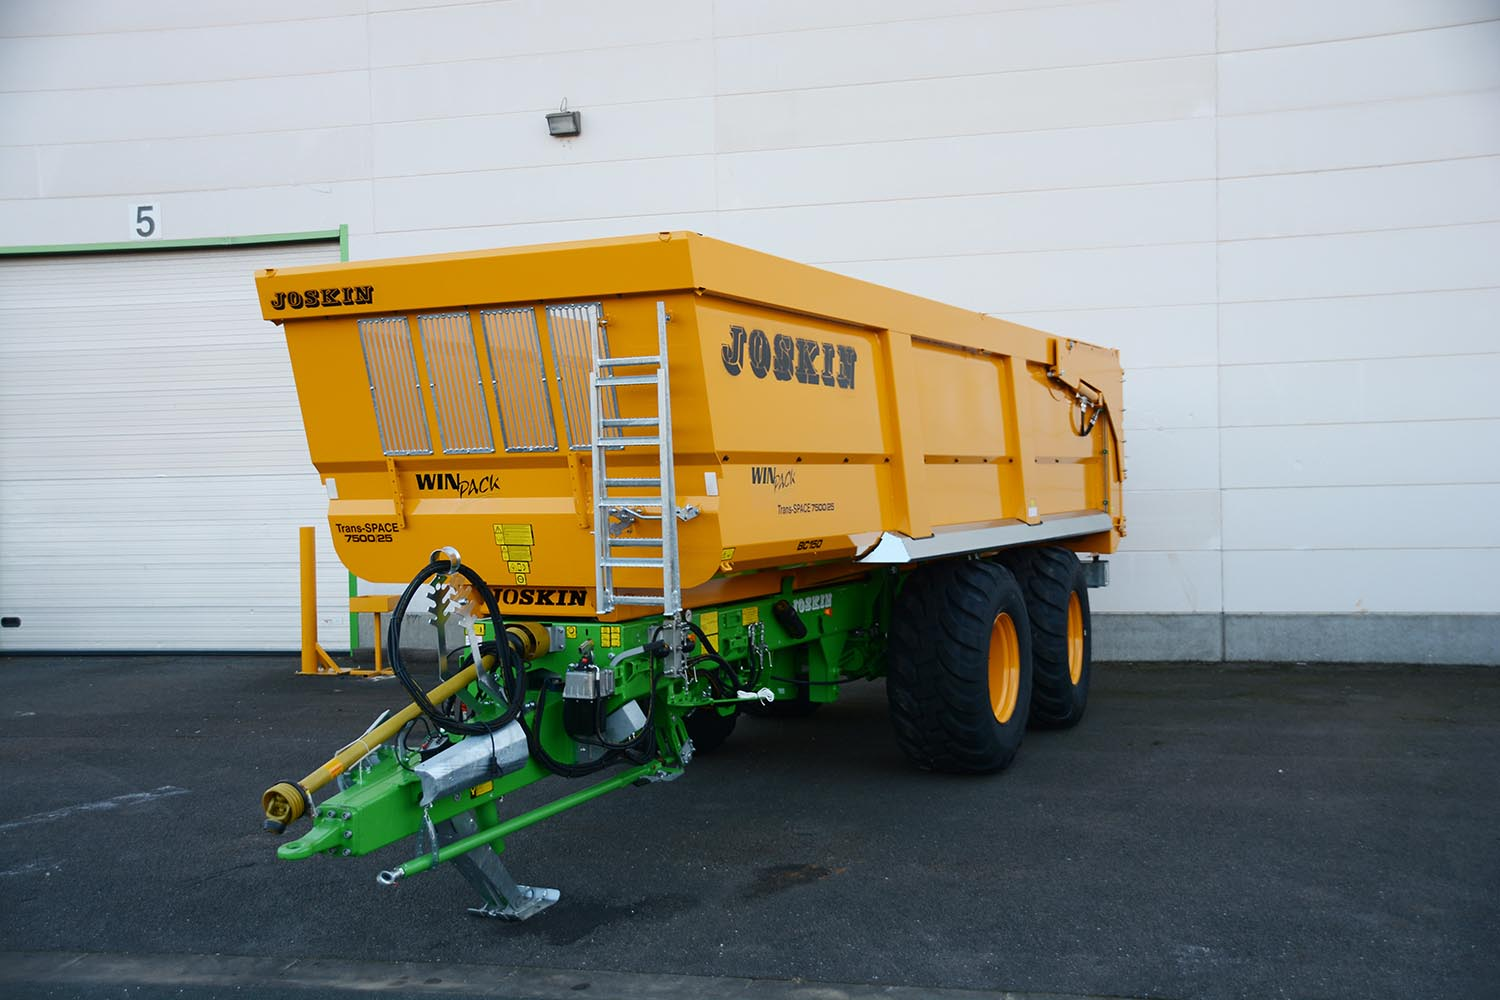 Joskin Tipping trailers Trans-SPACE 7,50m